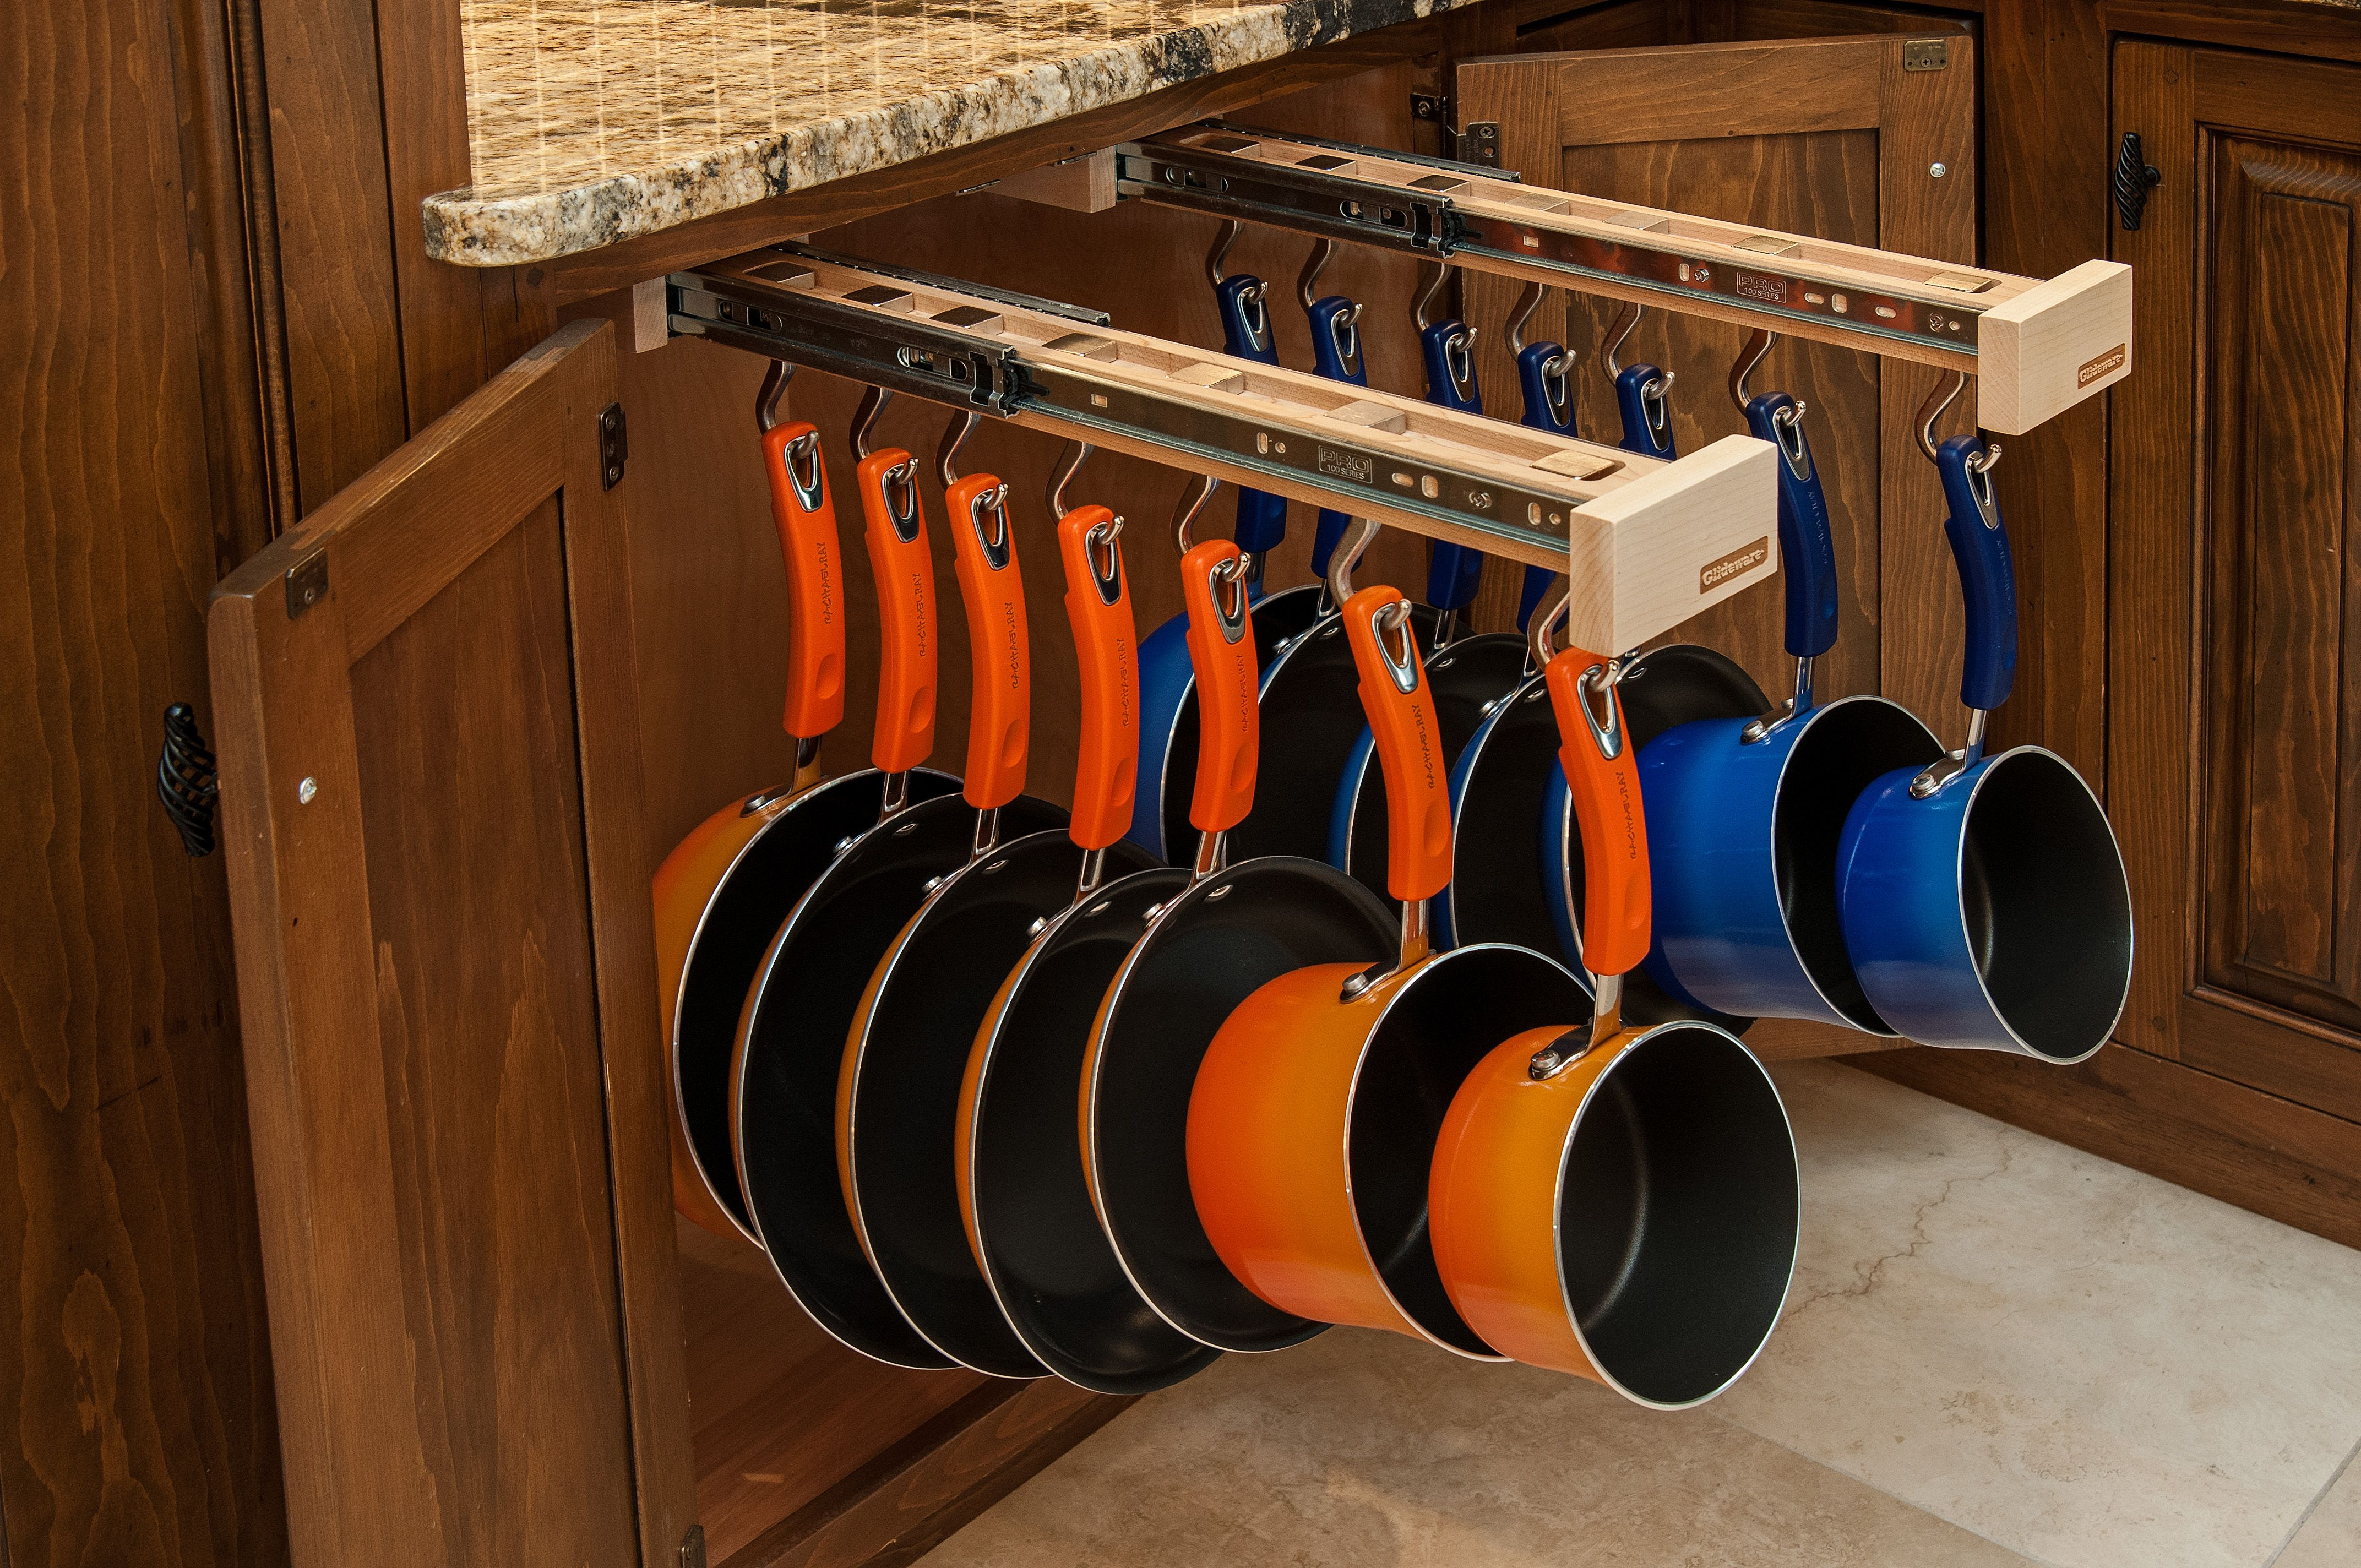 hidden hanging pots and pans seriously home organization kitchen remodel home diy on kitchen organization pots and pans id=12124